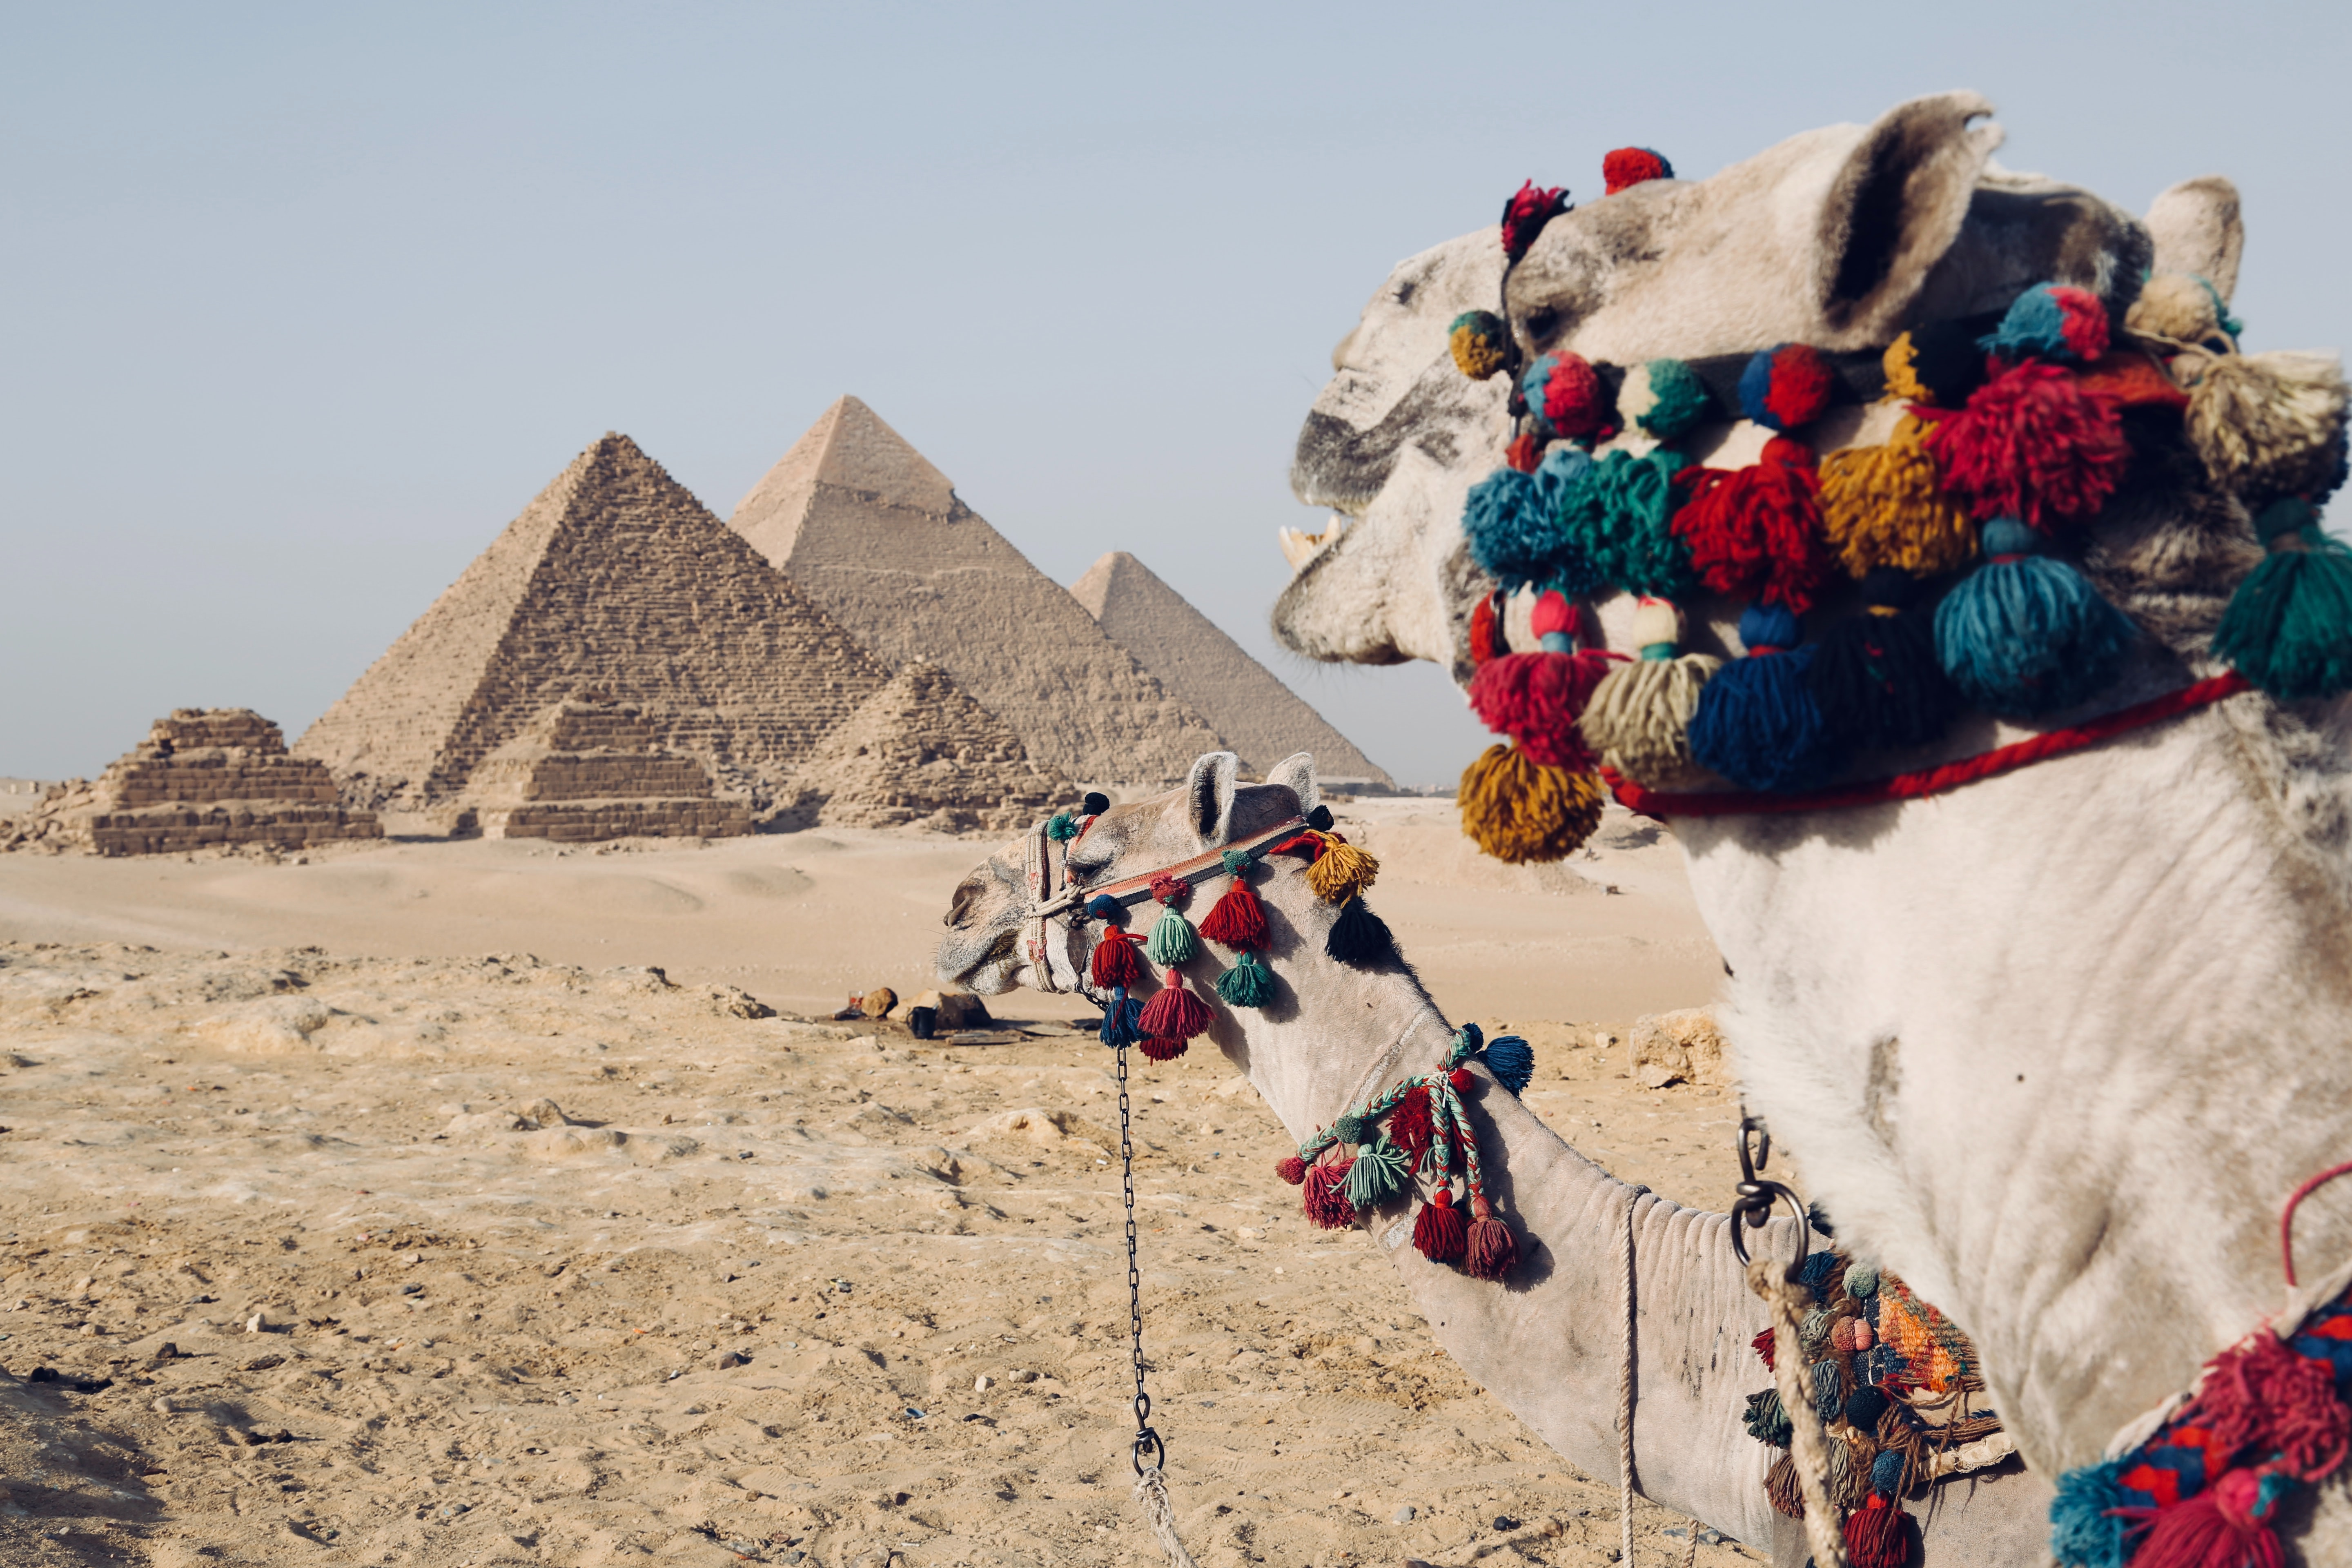 The Pyramids of Giza in Egypt with a camel.